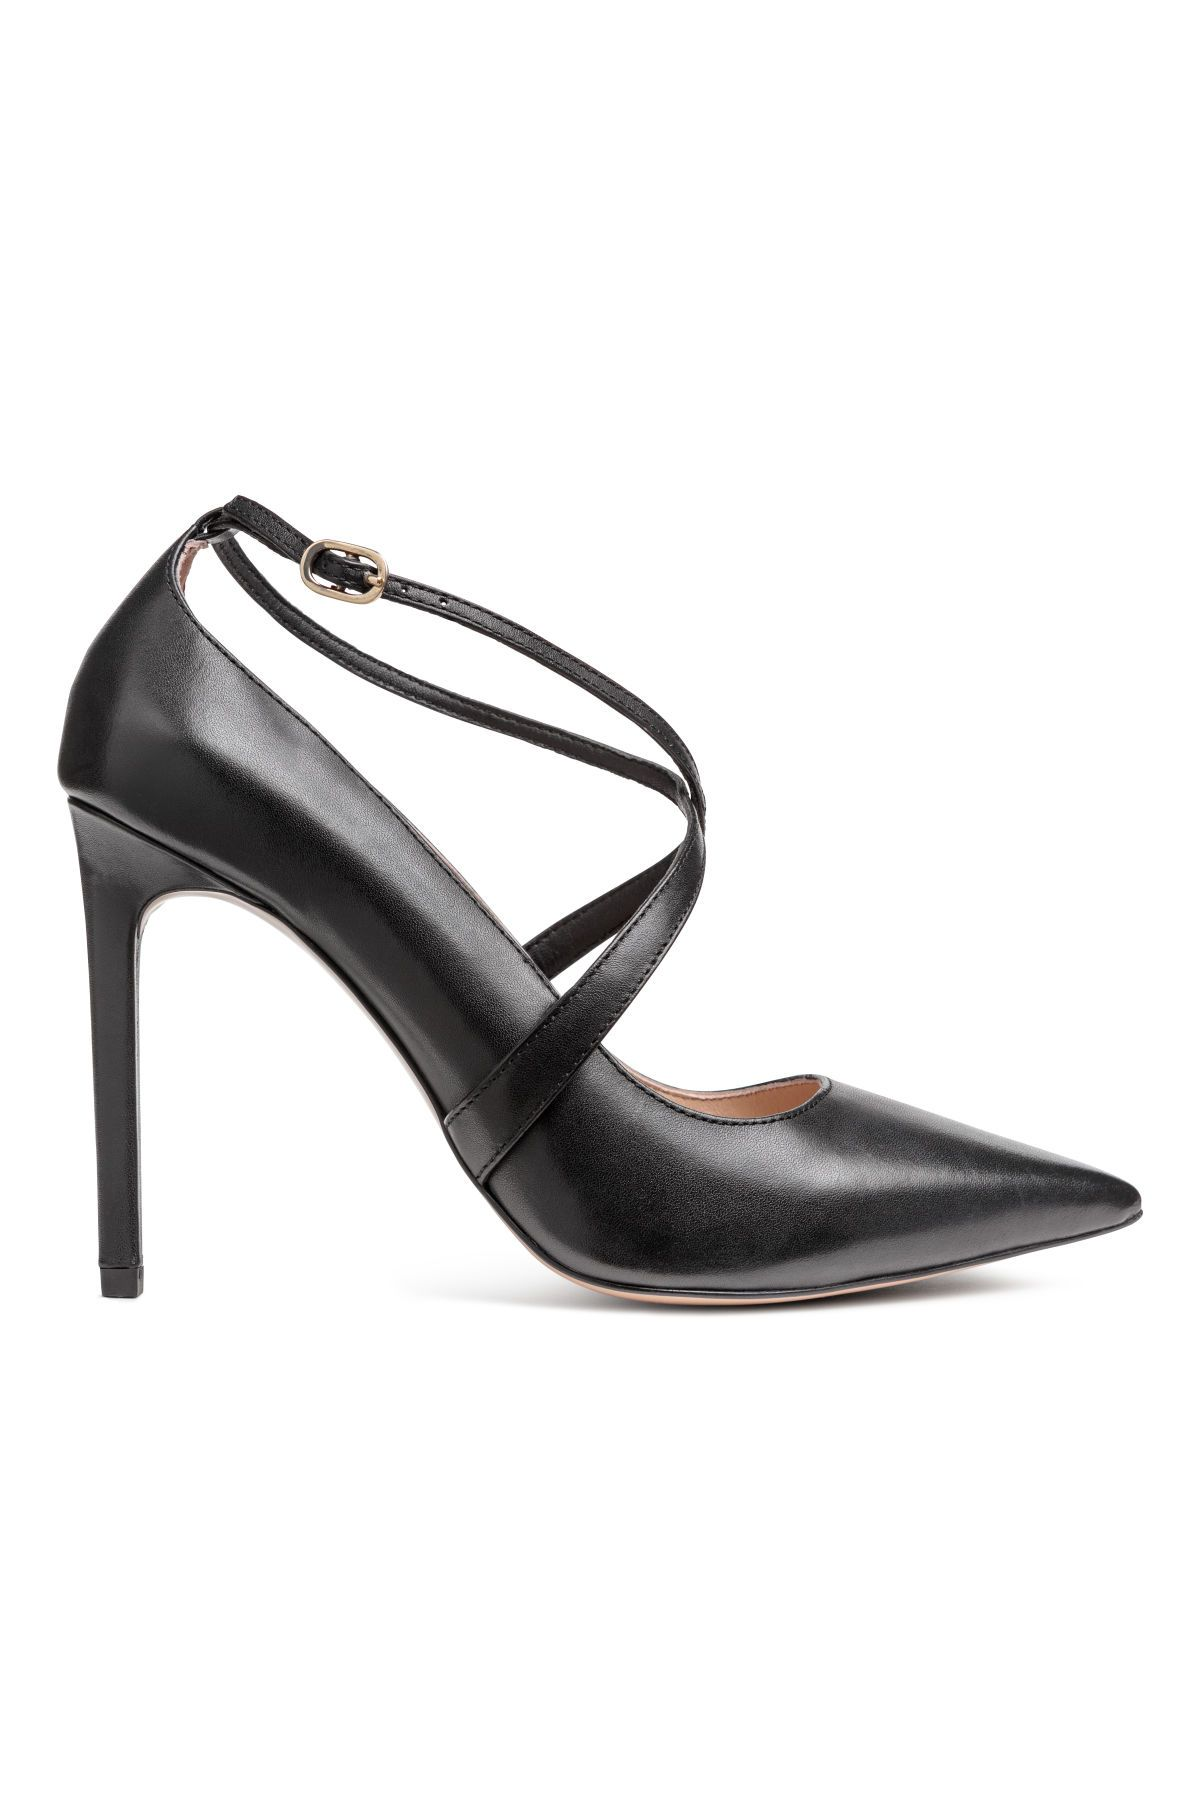 654b109fdae7b Pumps | Black/leather | WOMEN | H&M US | Shoes | Shoes, Court shoes ...